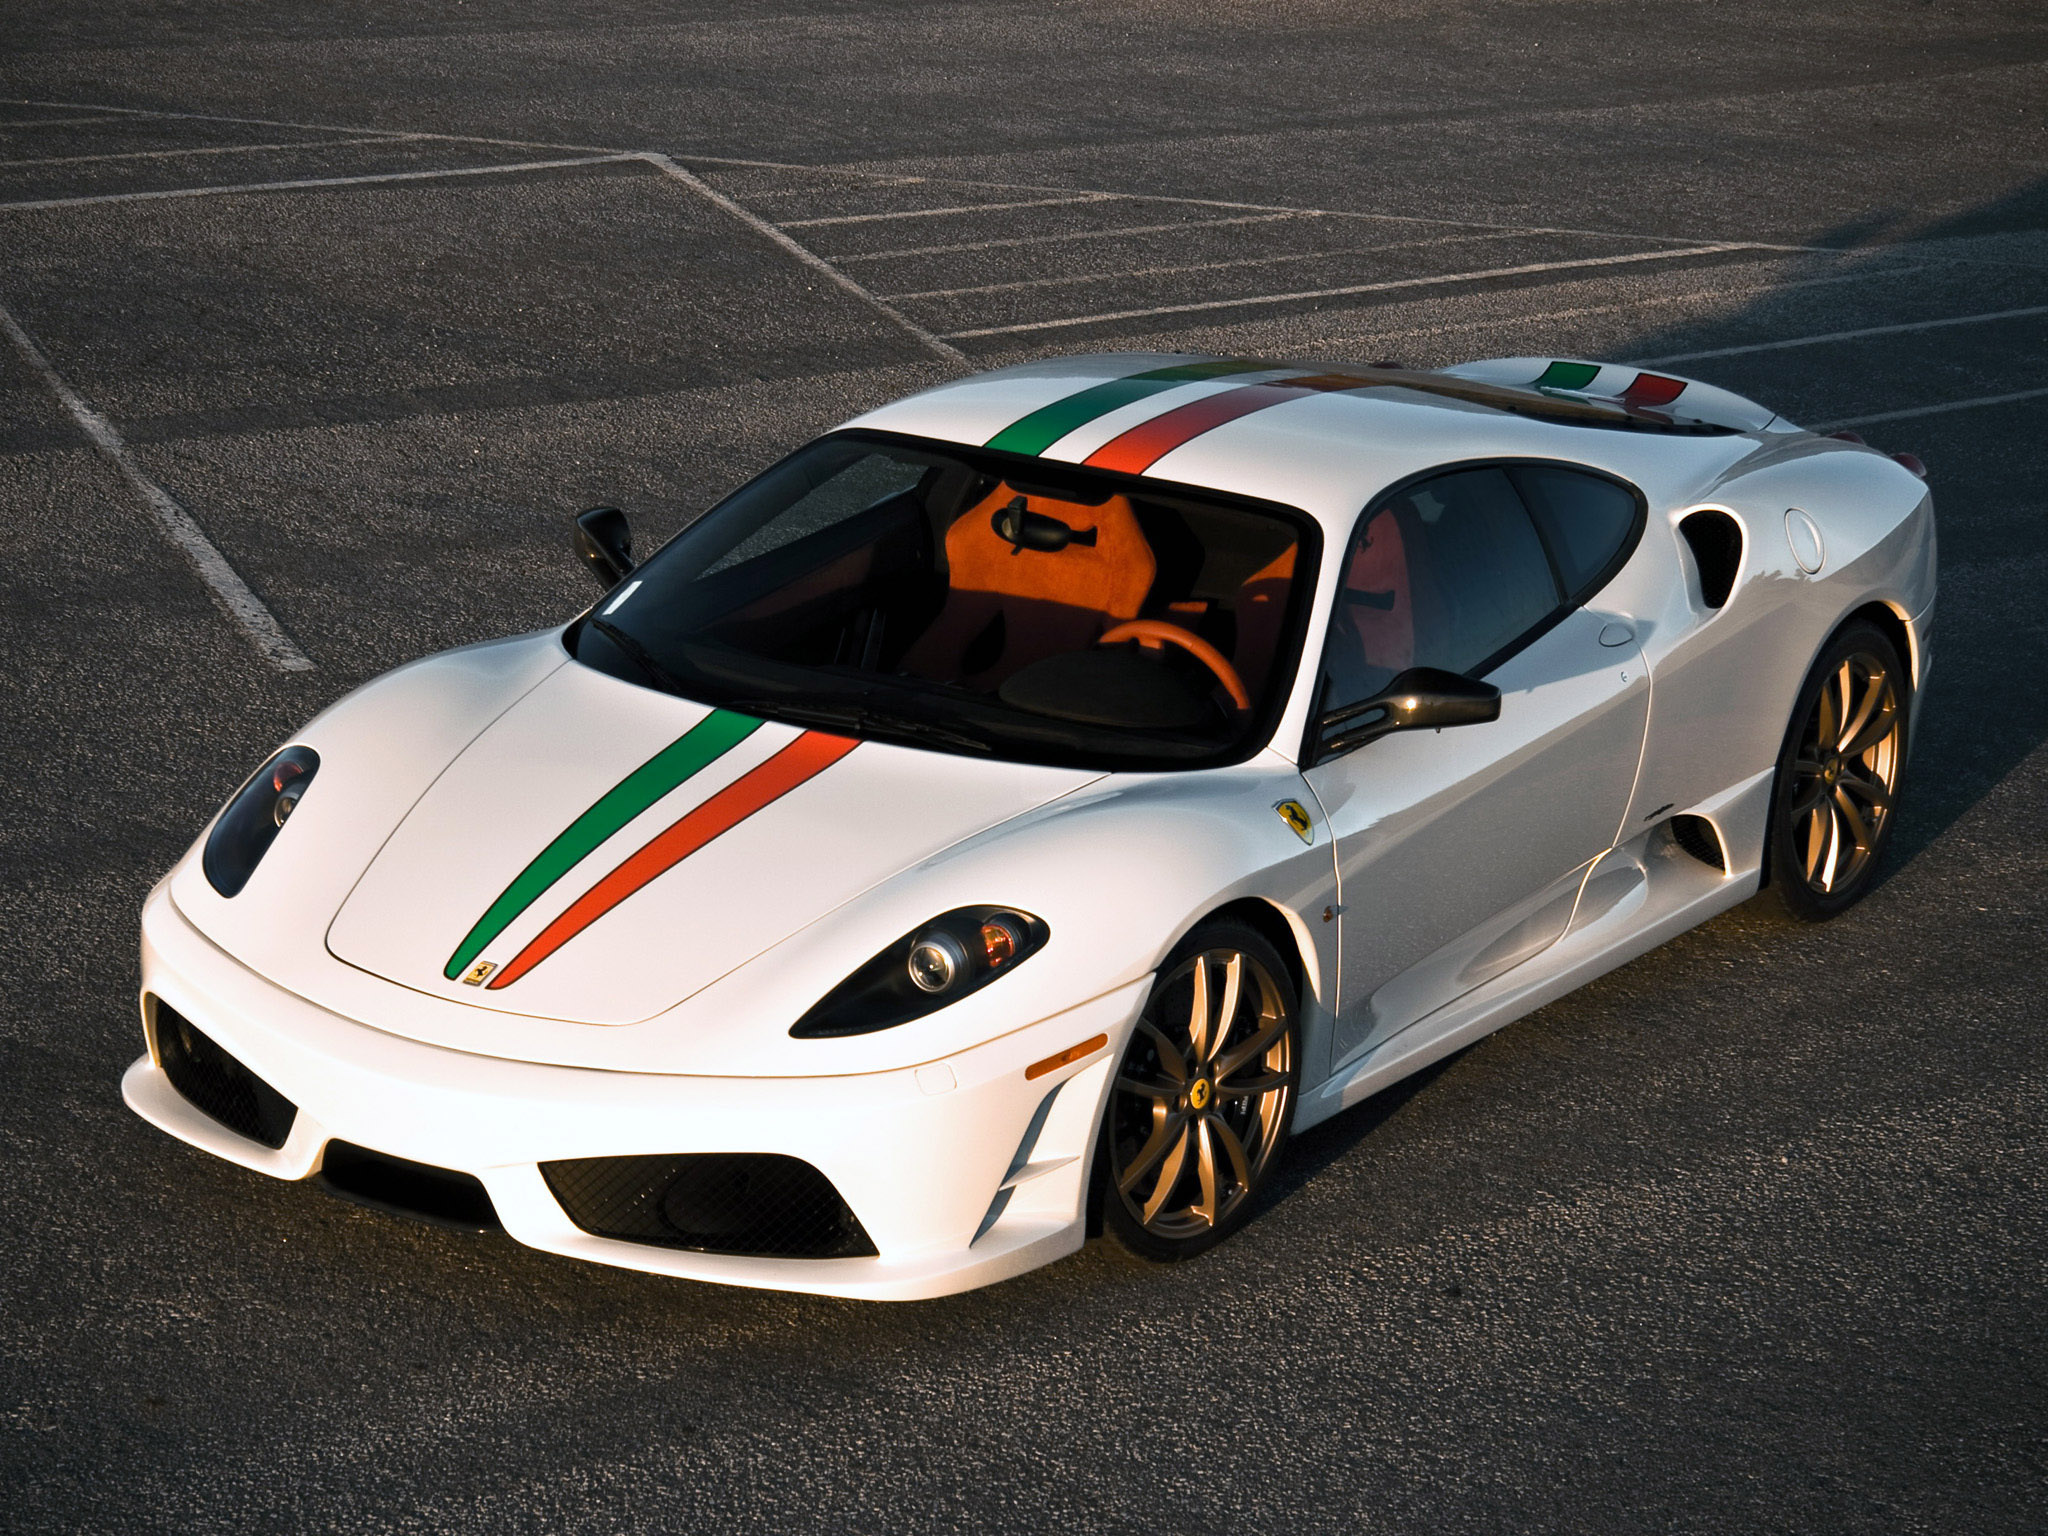 ferrari f430 scuderia 2007 ferrari f430 scuderia 2007 photo 18 car in pictures car photo gallery. Black Bedroom Furniture Sets. Home Design Ideas